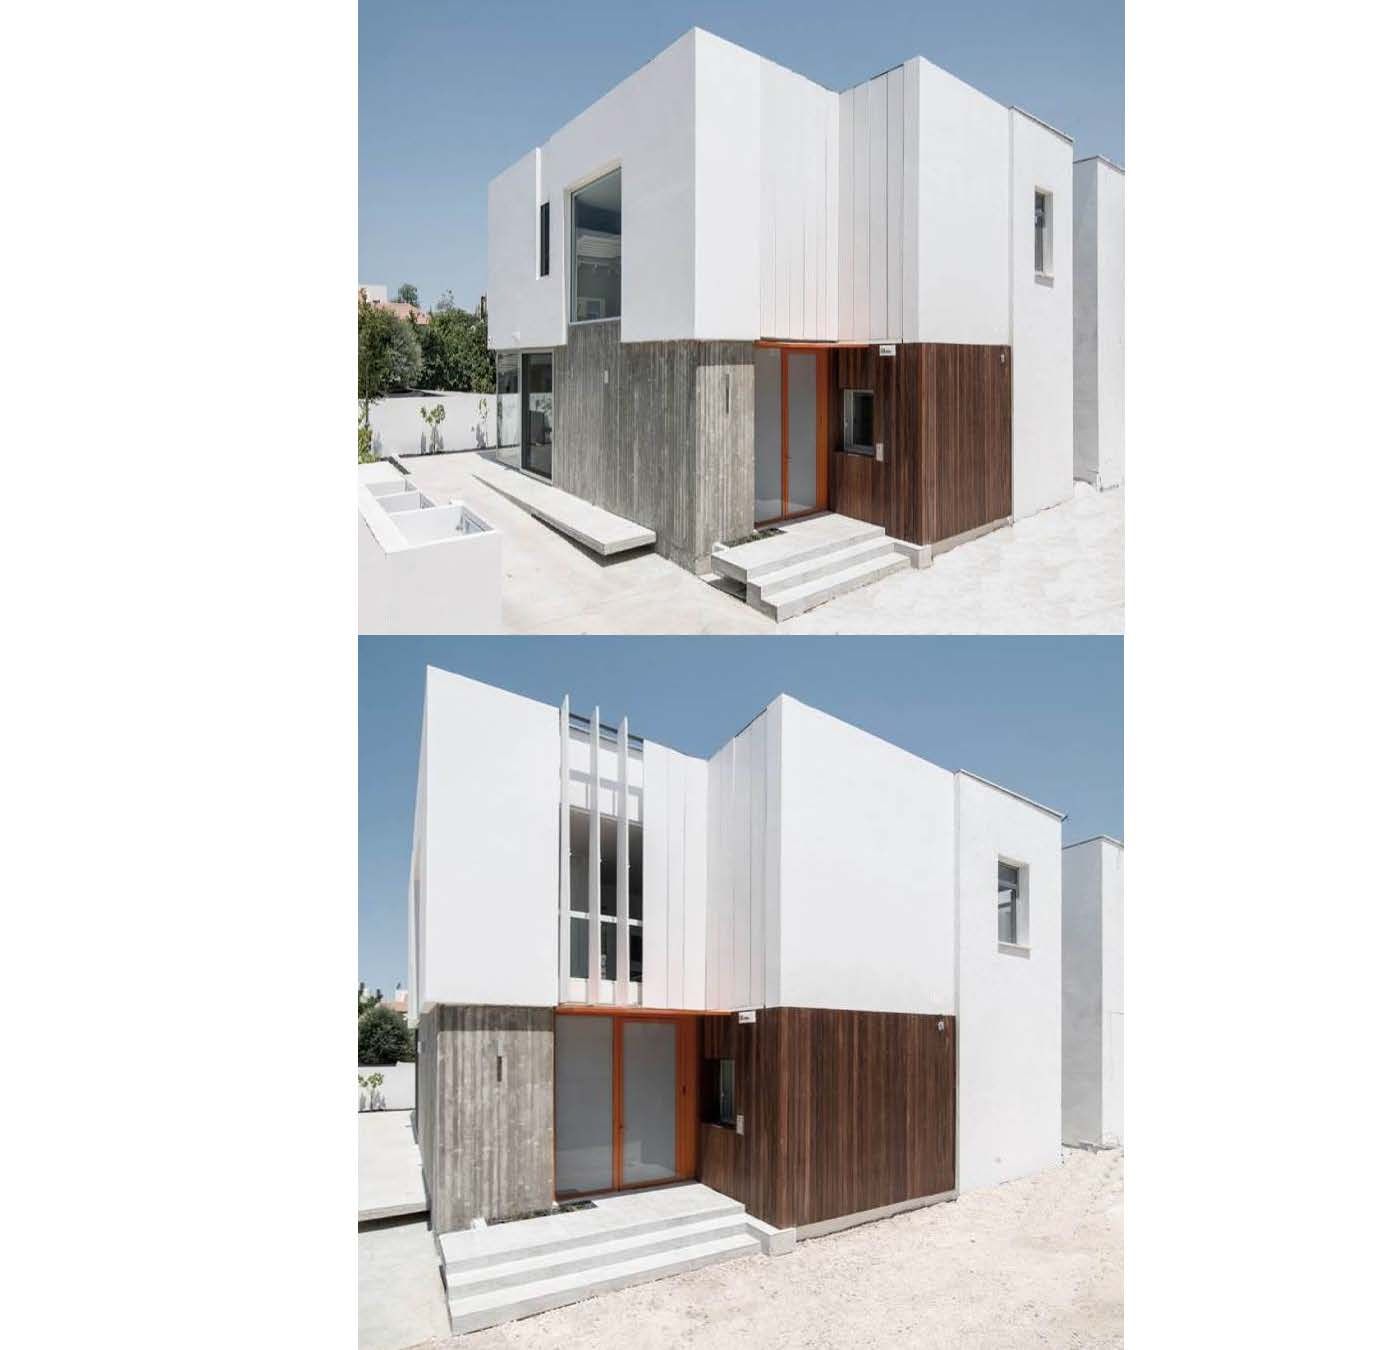 ZIV KRICELI-PROJECTS_Page_126